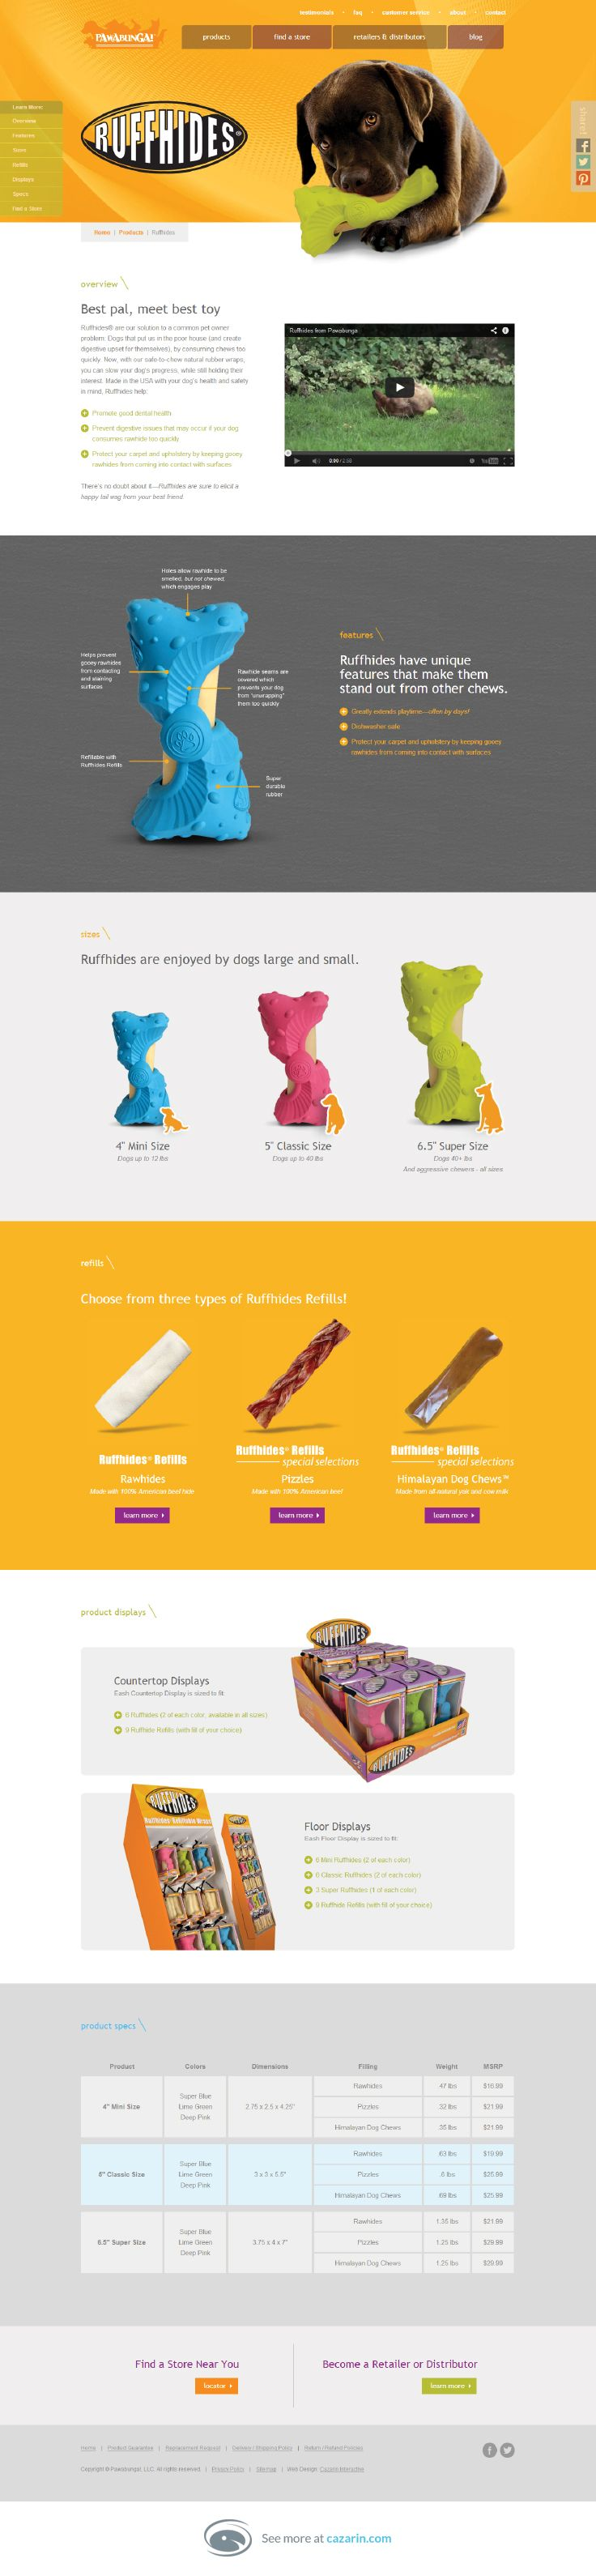 """Pawabunga pet products website, designed by Cazarin Interactive featuring in-depth product page layouts. """"Best pal, meet best toy."""" Awwww...."""